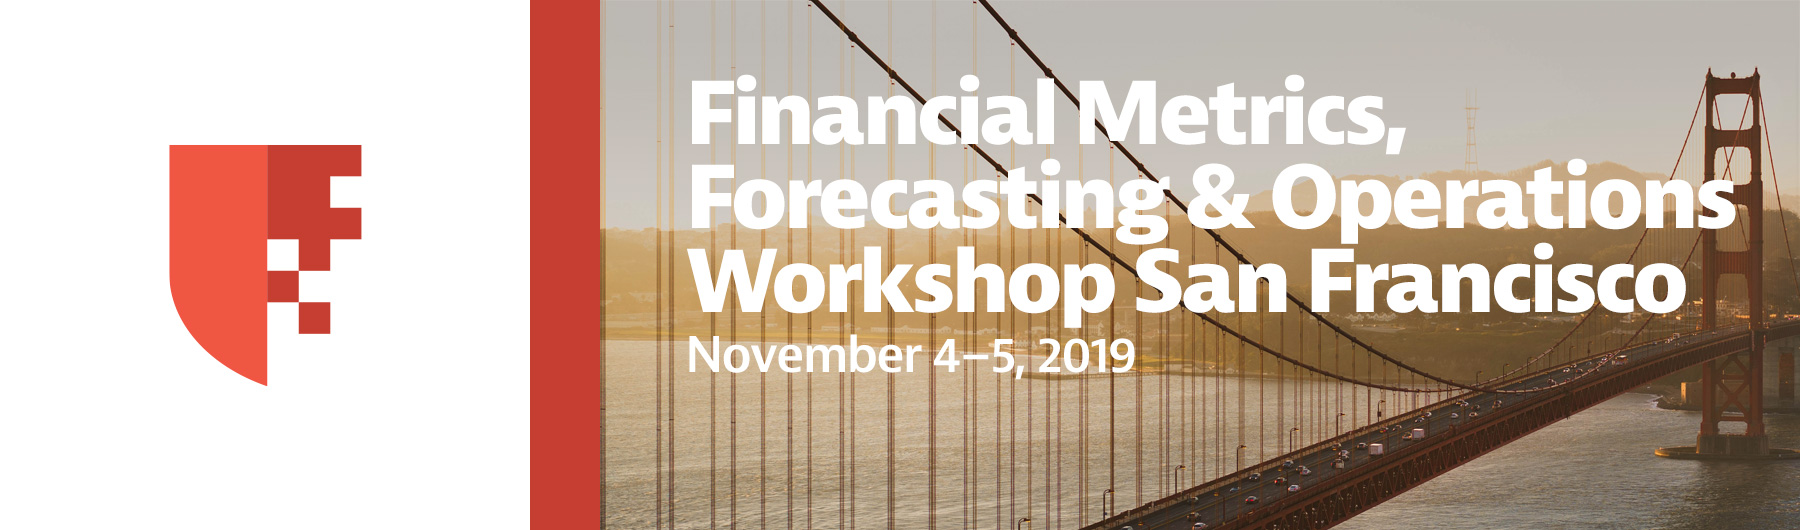 workshop-banners-rect-forecasting_sanfran-nov.jpg